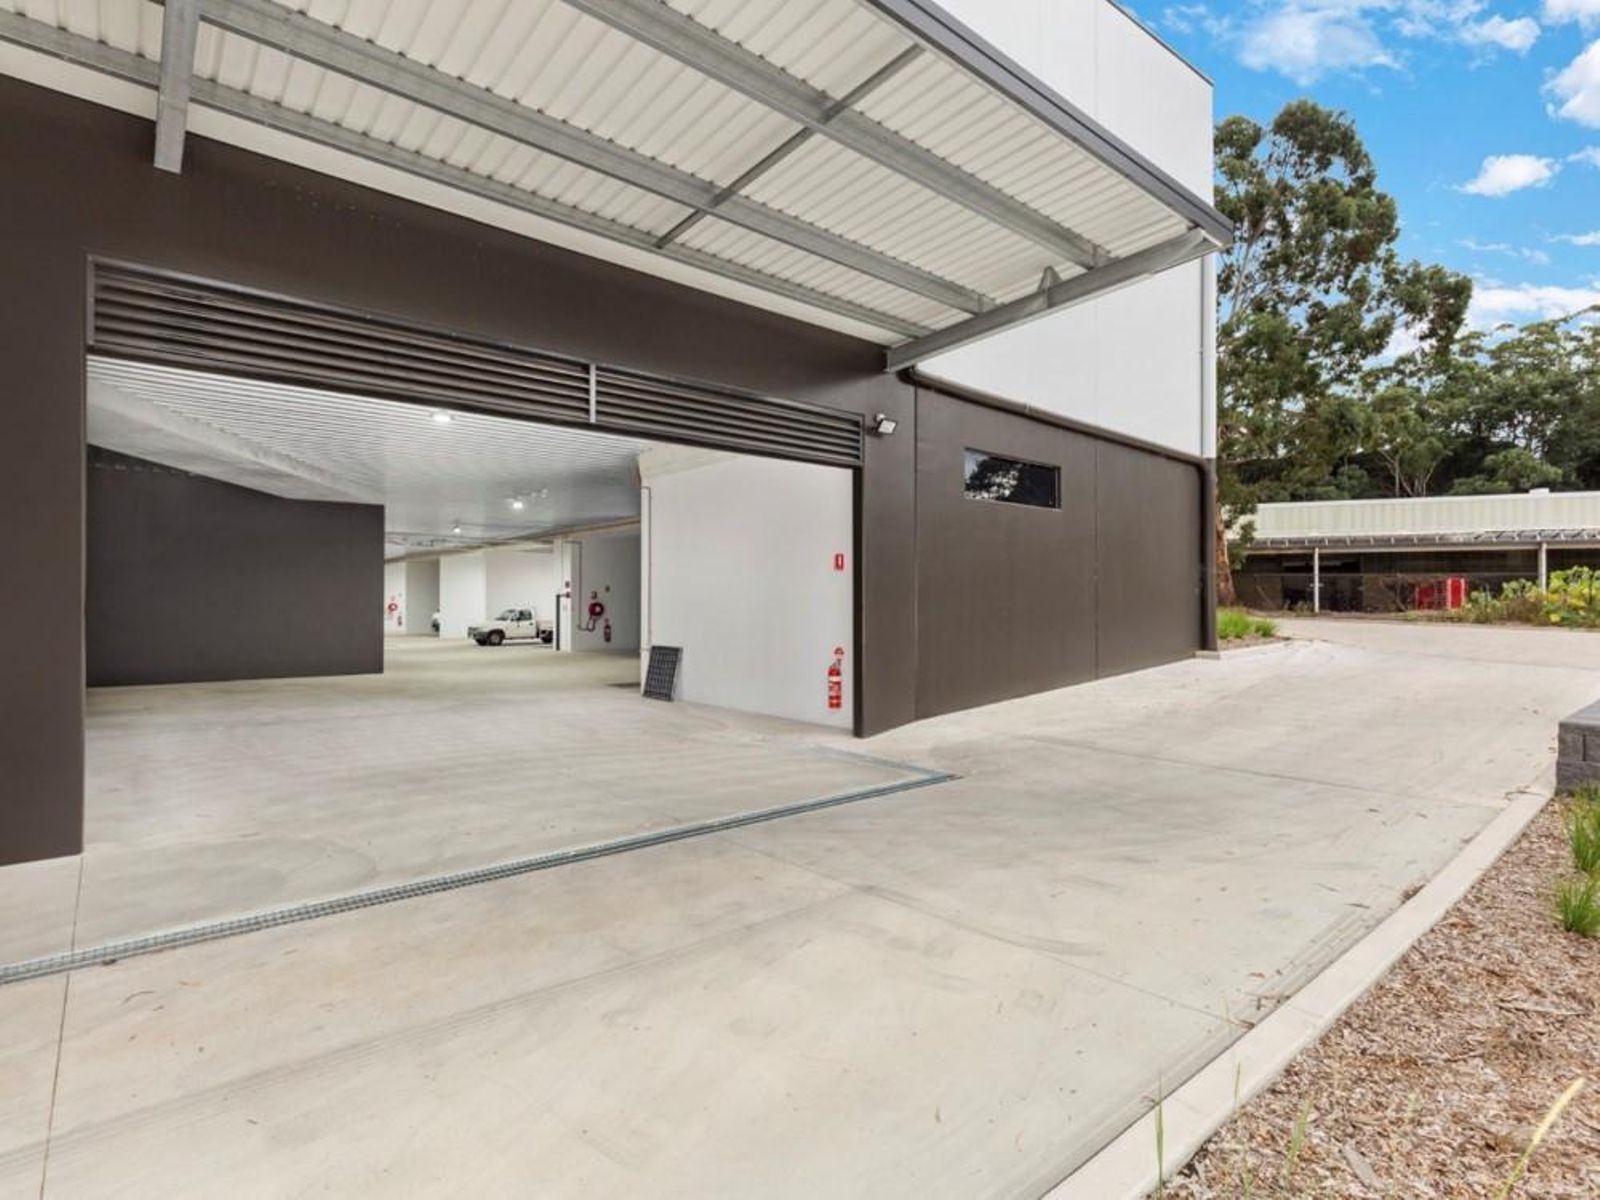 22/242 New Line Road, Dural, NSW 2158